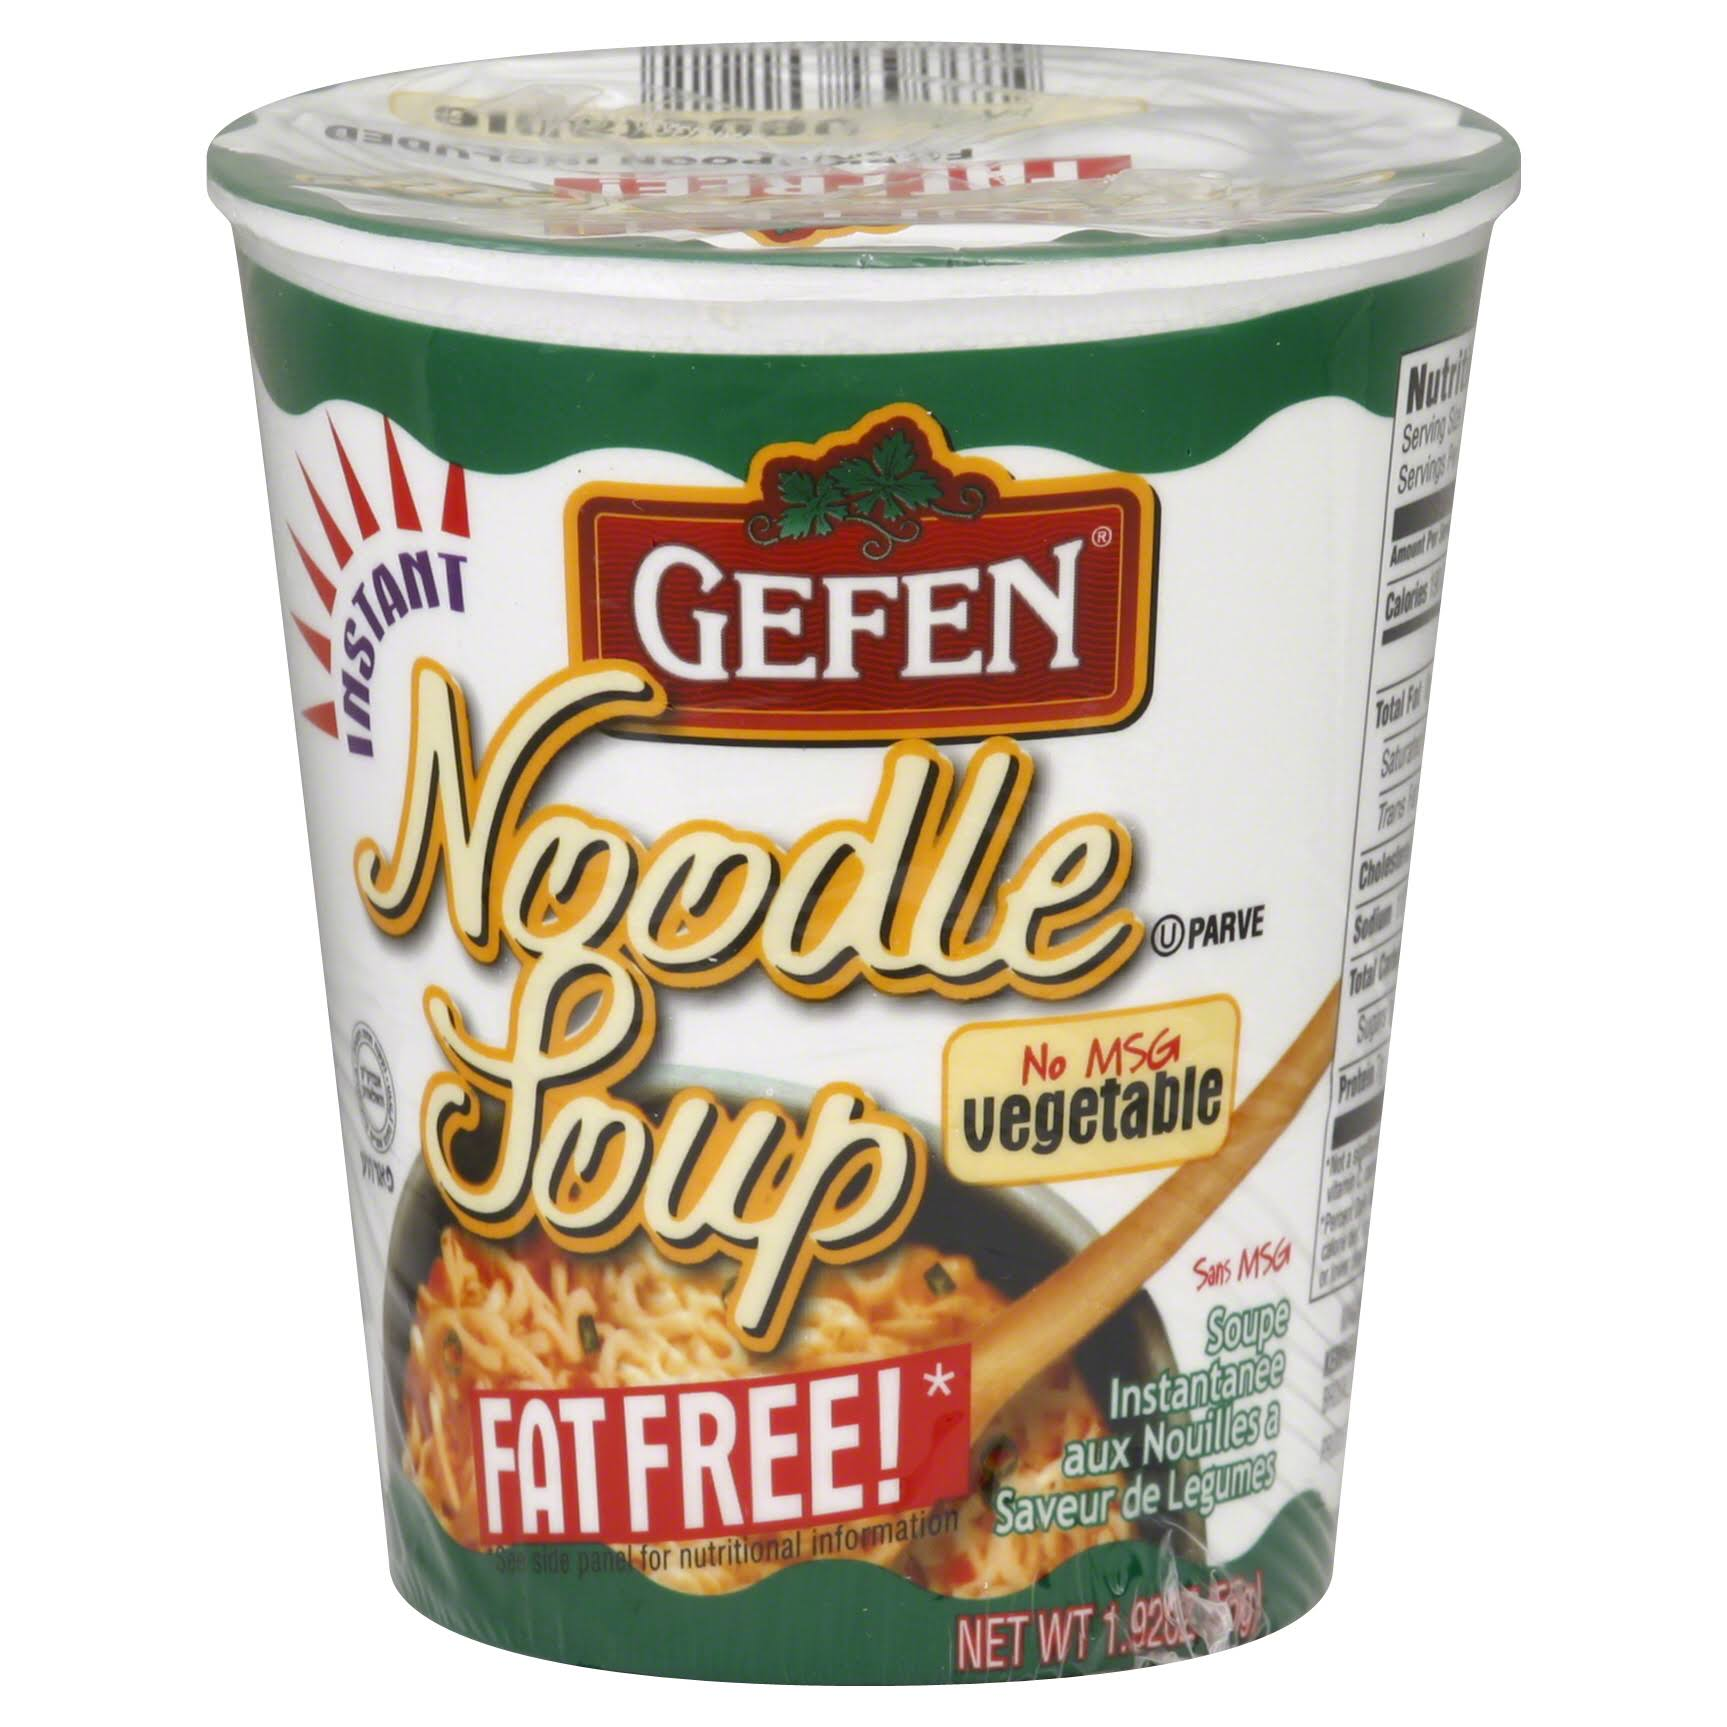 Gefen Noodle Soup, Instant, Vegetable Flavor - 1.92 oz